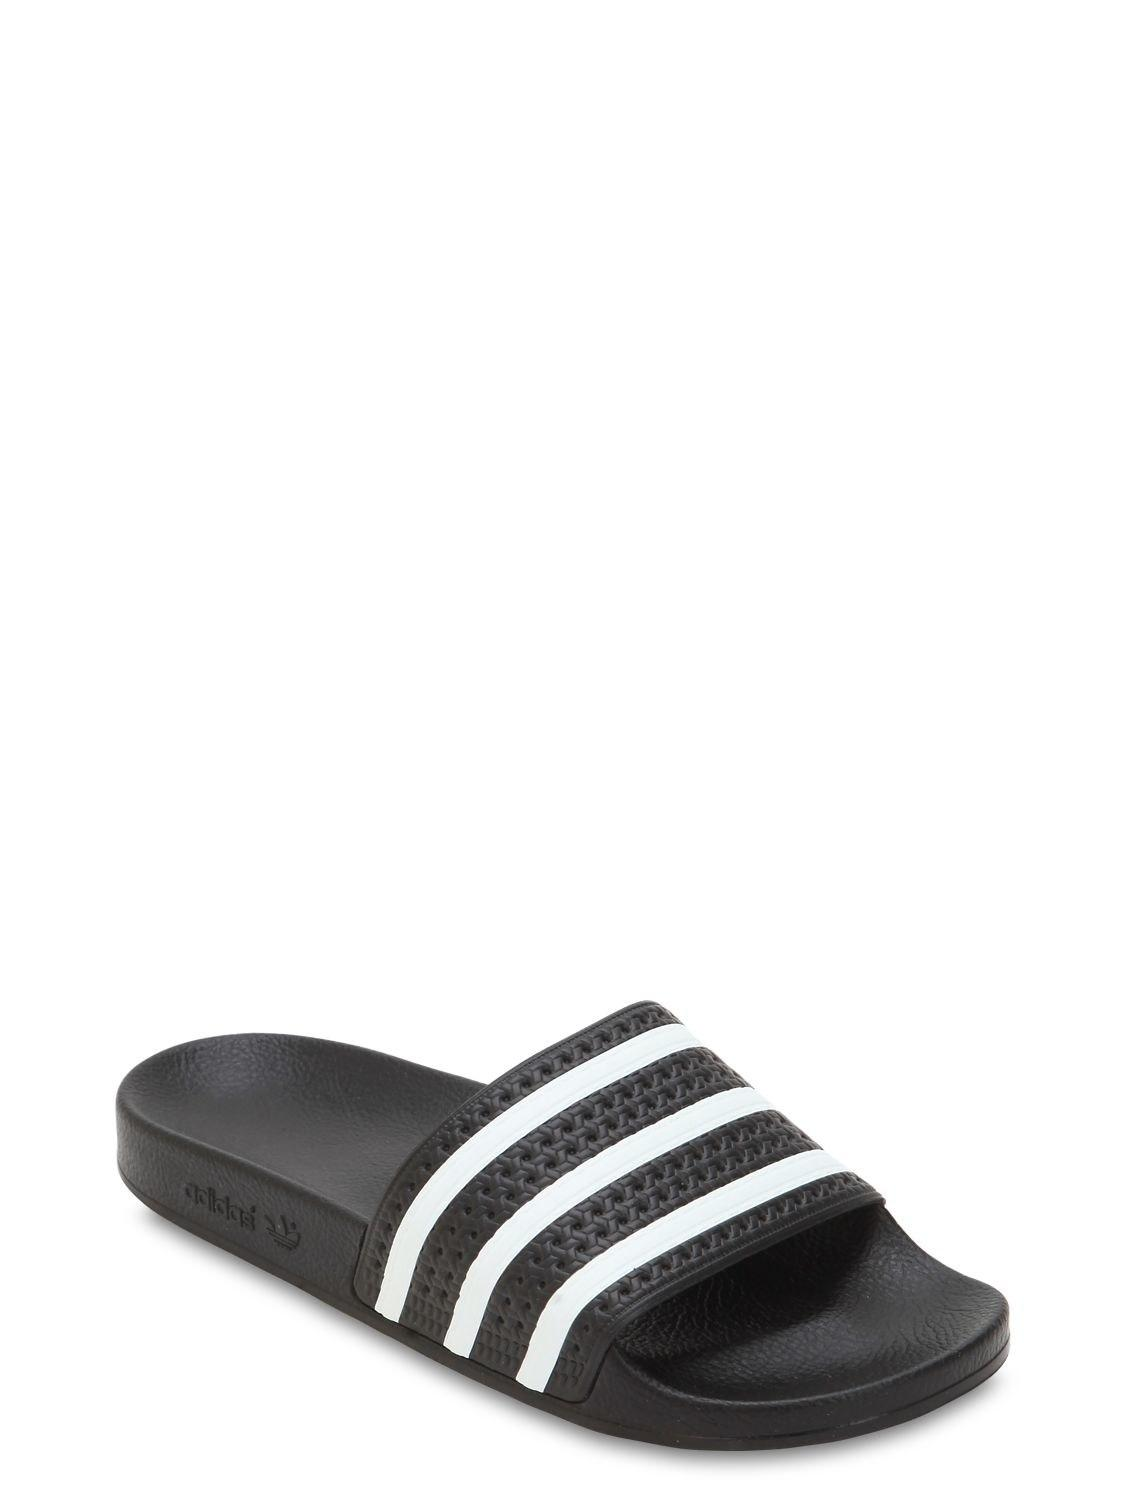 f5d738fe0 adidas Originals Adilette Rubber Slide Sandals in Black for Men - Lyst